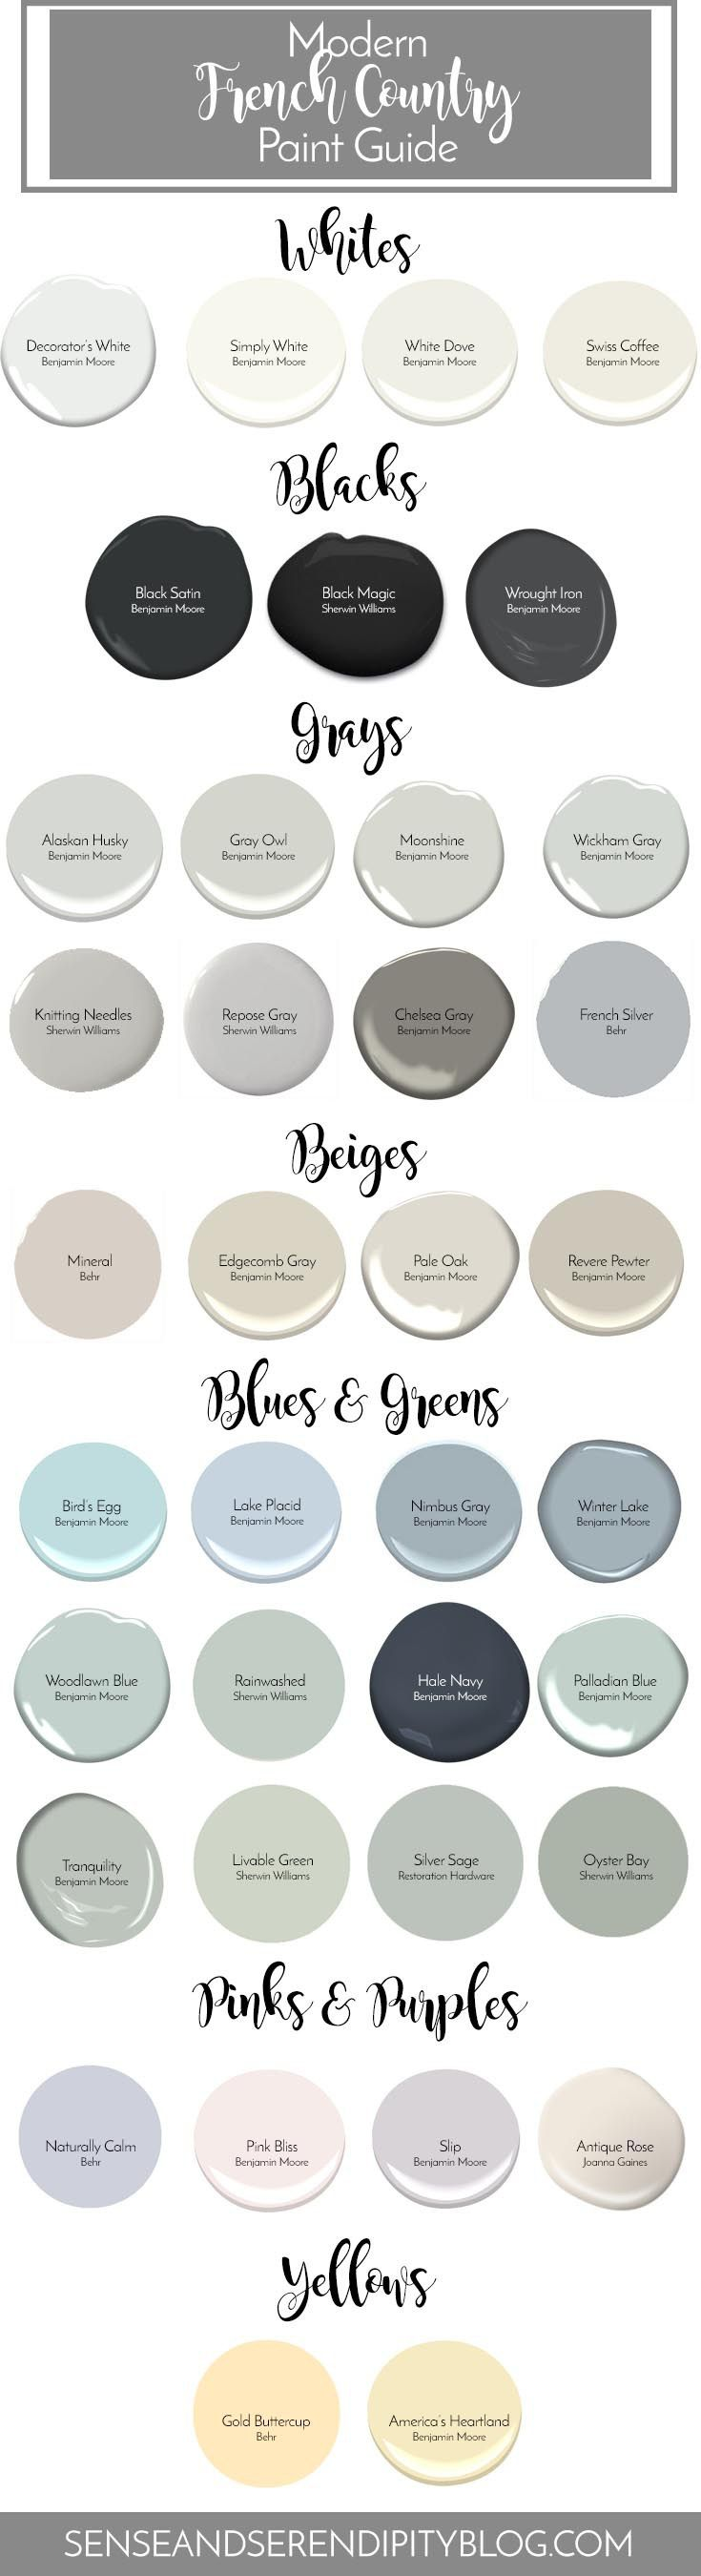 Modern French Country Paint Guide Sense Serendipity